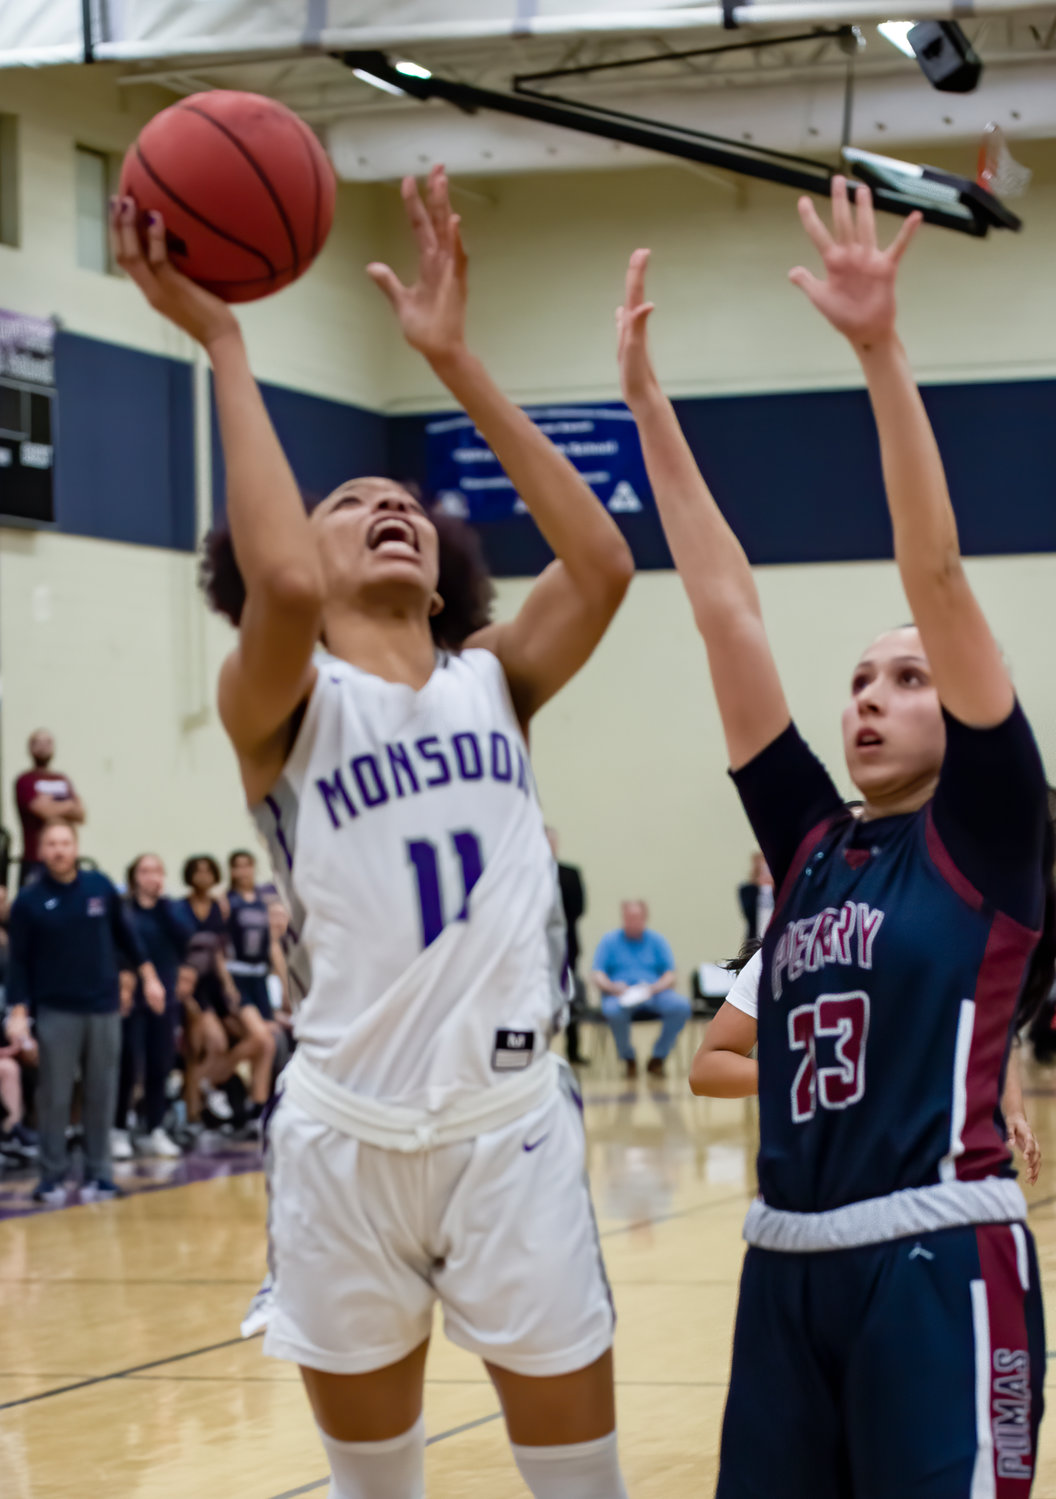 Valley Vista junior forward Marisa Davis goes up for the winning layup with three seconds left in the Monsoon's 48-47 6A girls basketball semifinal win over Gilbert Perry Feb. 26 in Surprise.